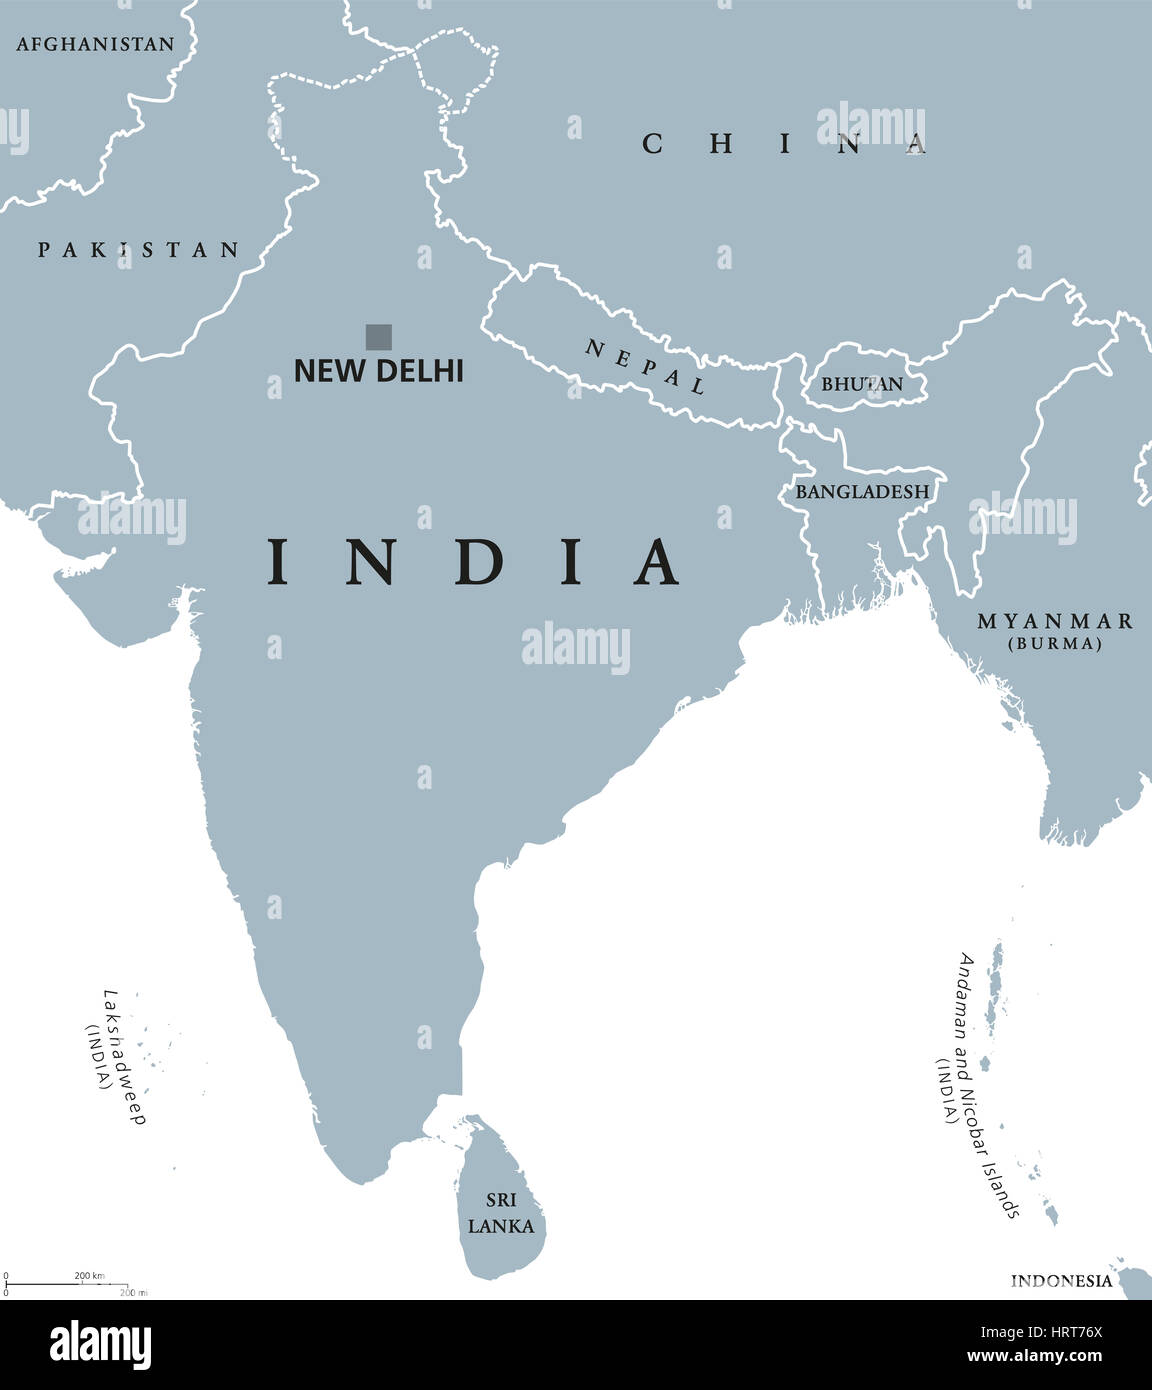 India Political Map With Capital New Delhi National Borders And